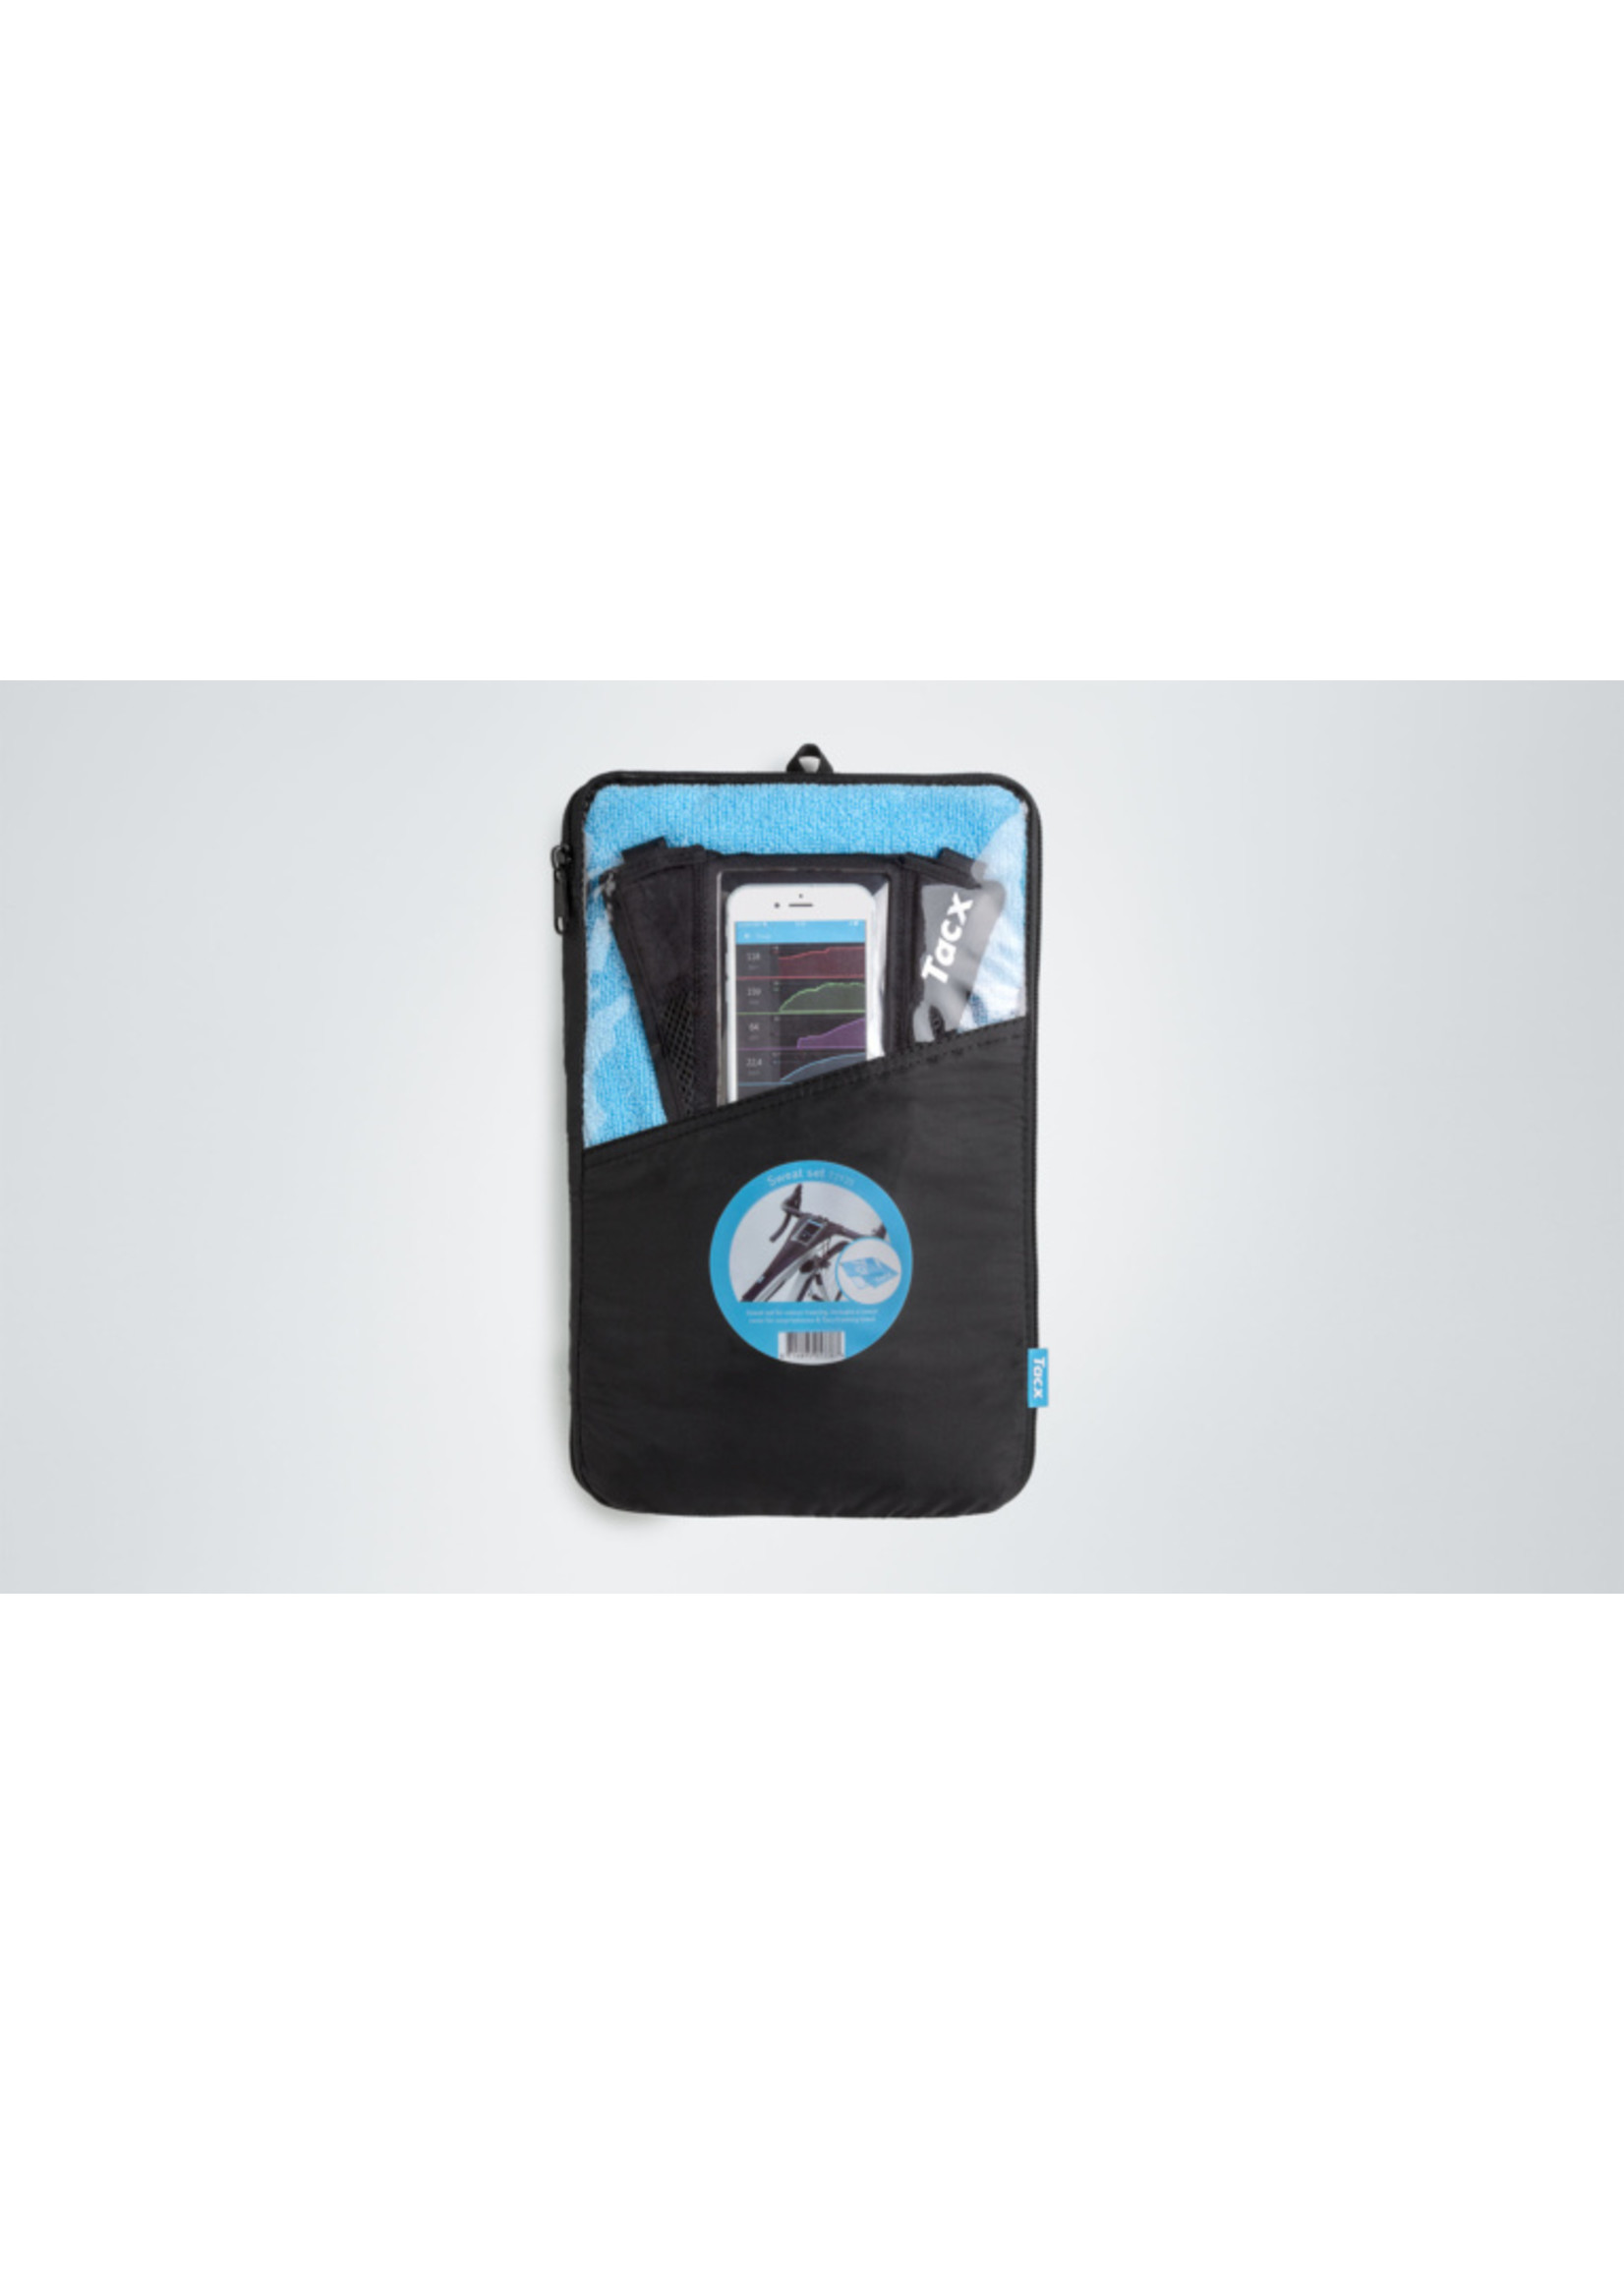 Tacx Tacx- Sweat Cover Set, Phone Cover and Towel